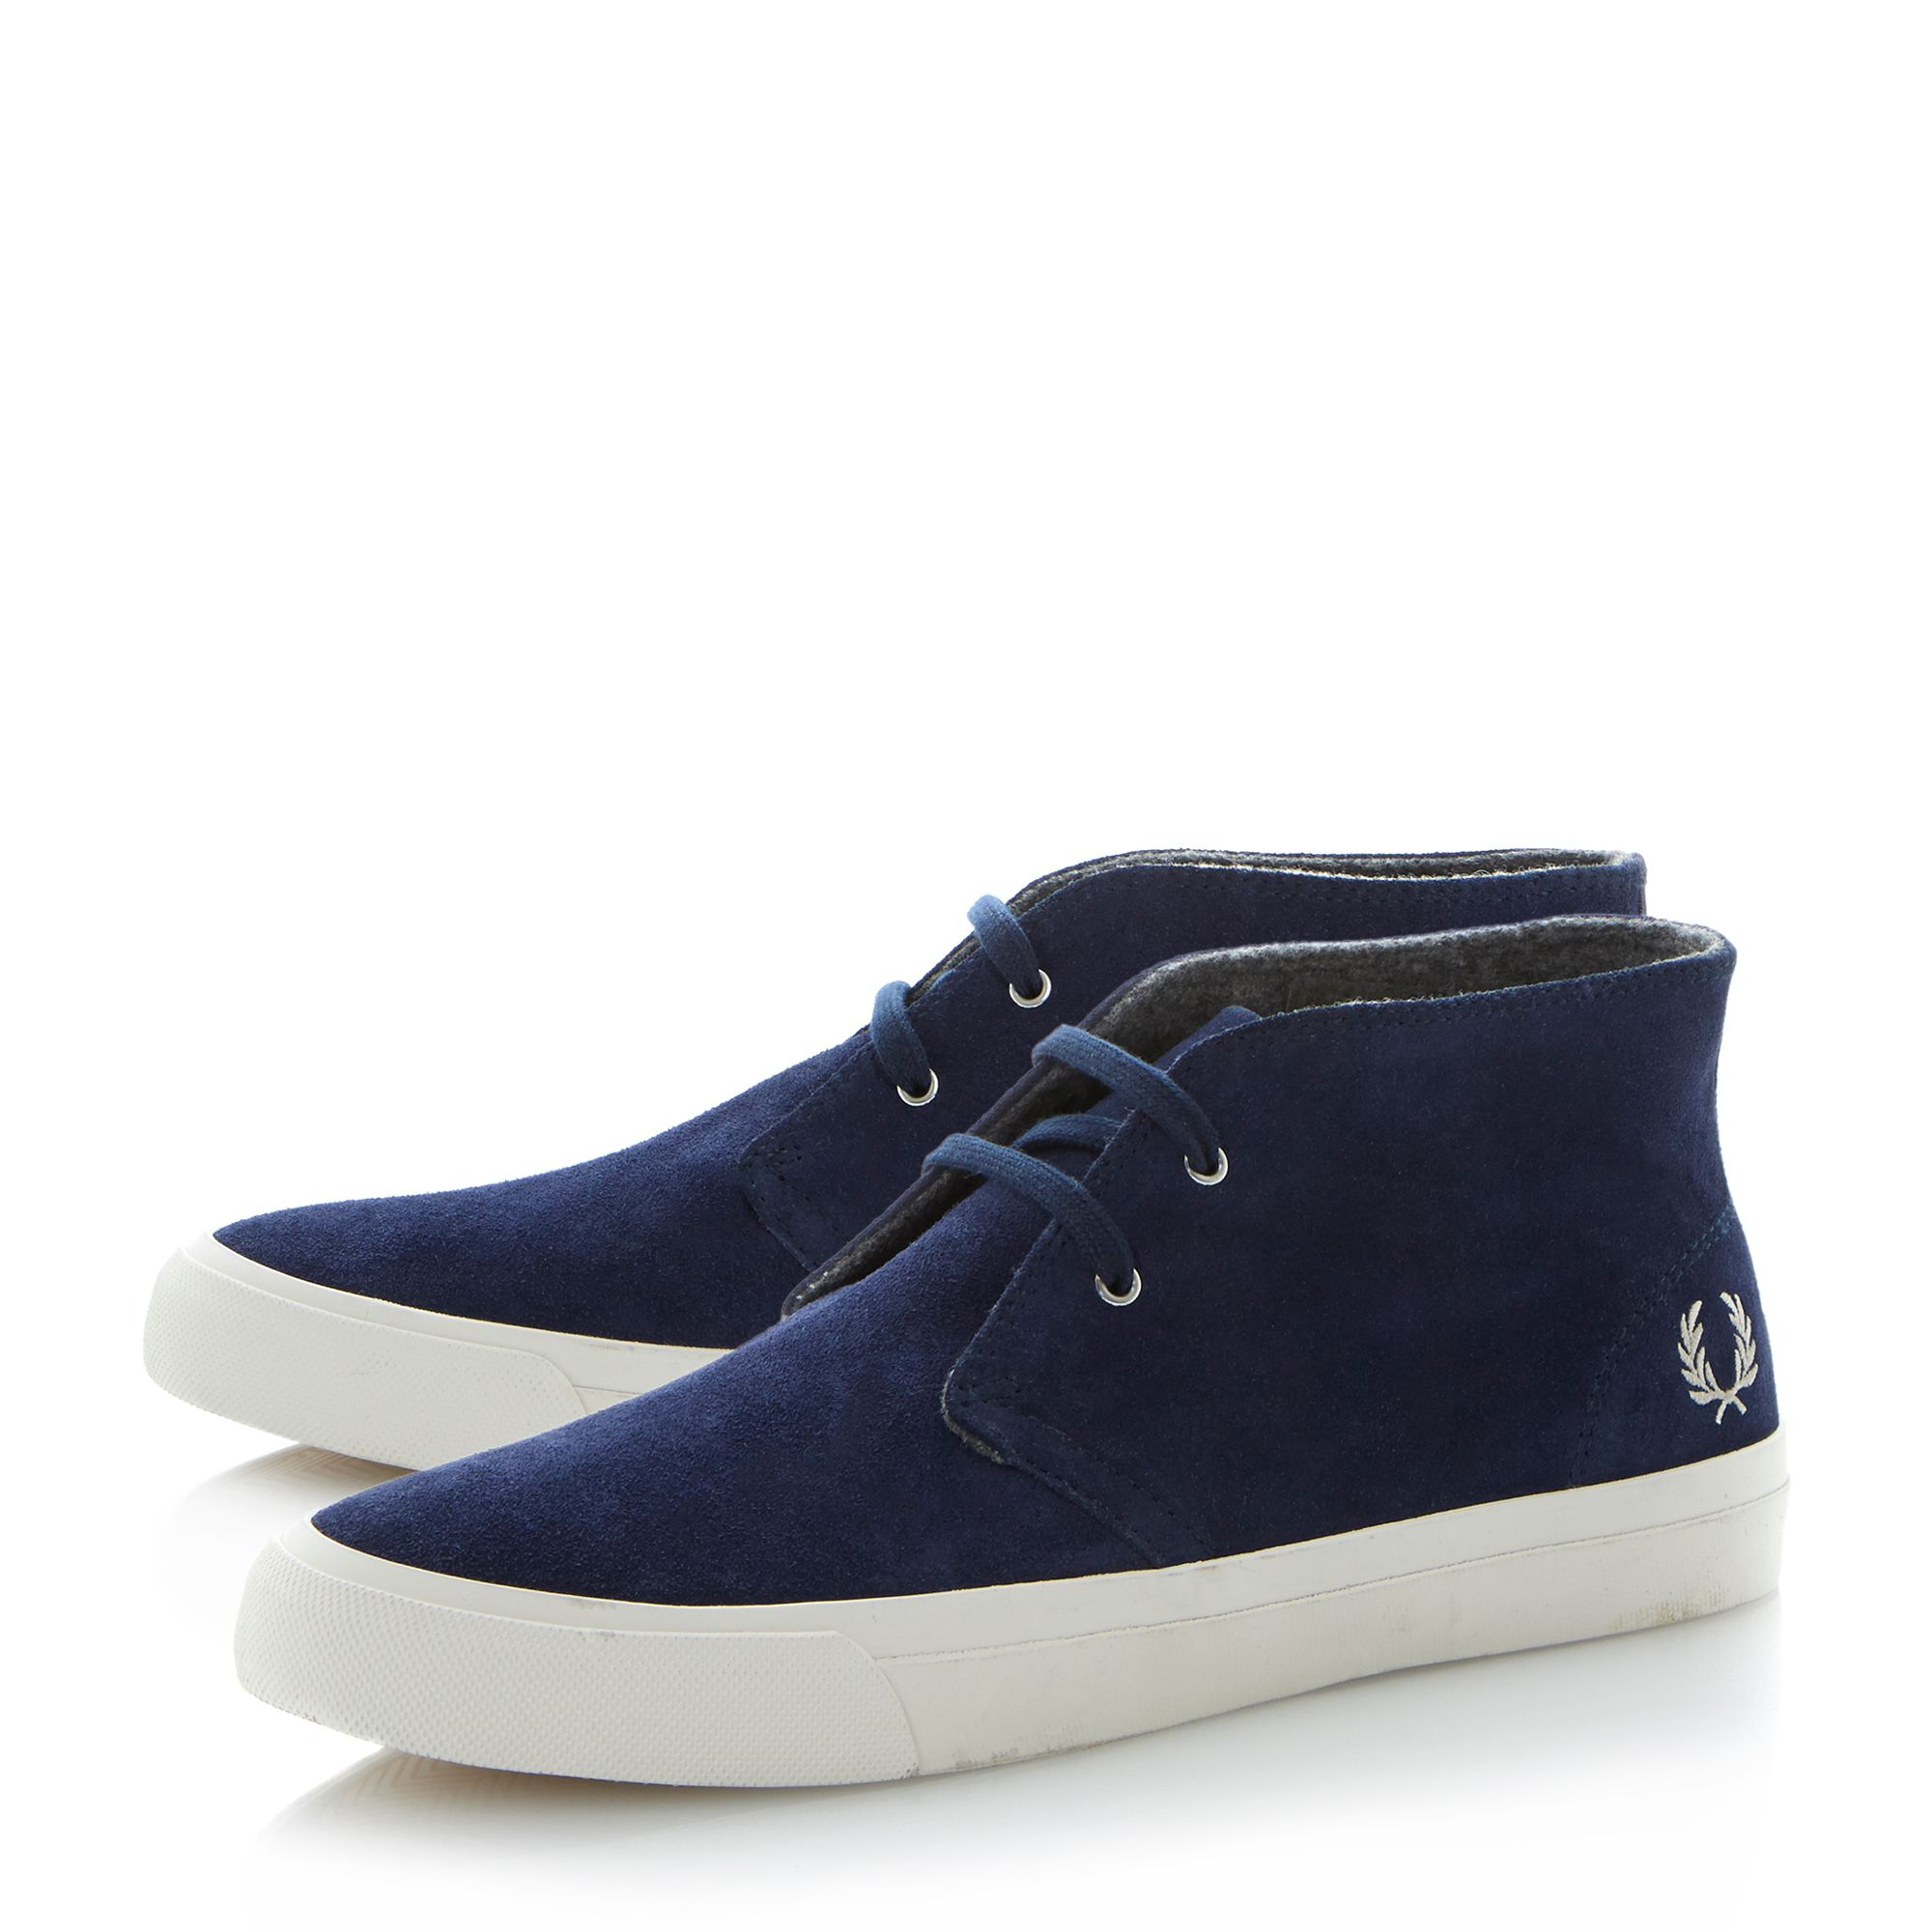 Lyst - Fred Perry Vernon Mid Lace Up Chukka Boots in Blue ...